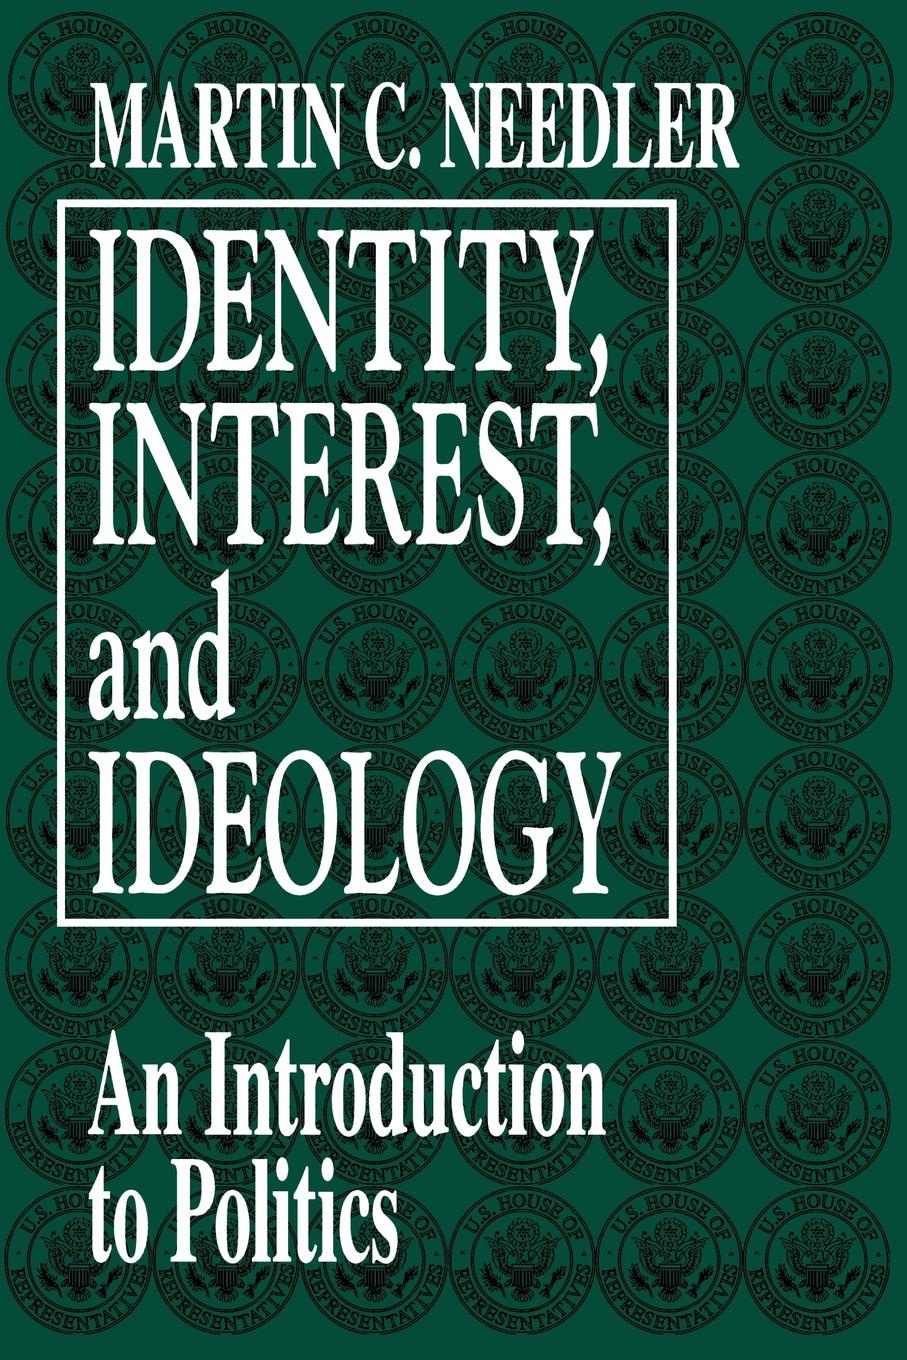 Martin C. Needler Identity, Interest, and Ideology. An Introduction to Politics burke o long planting and reaping albright politics ideology and interpreting the bible